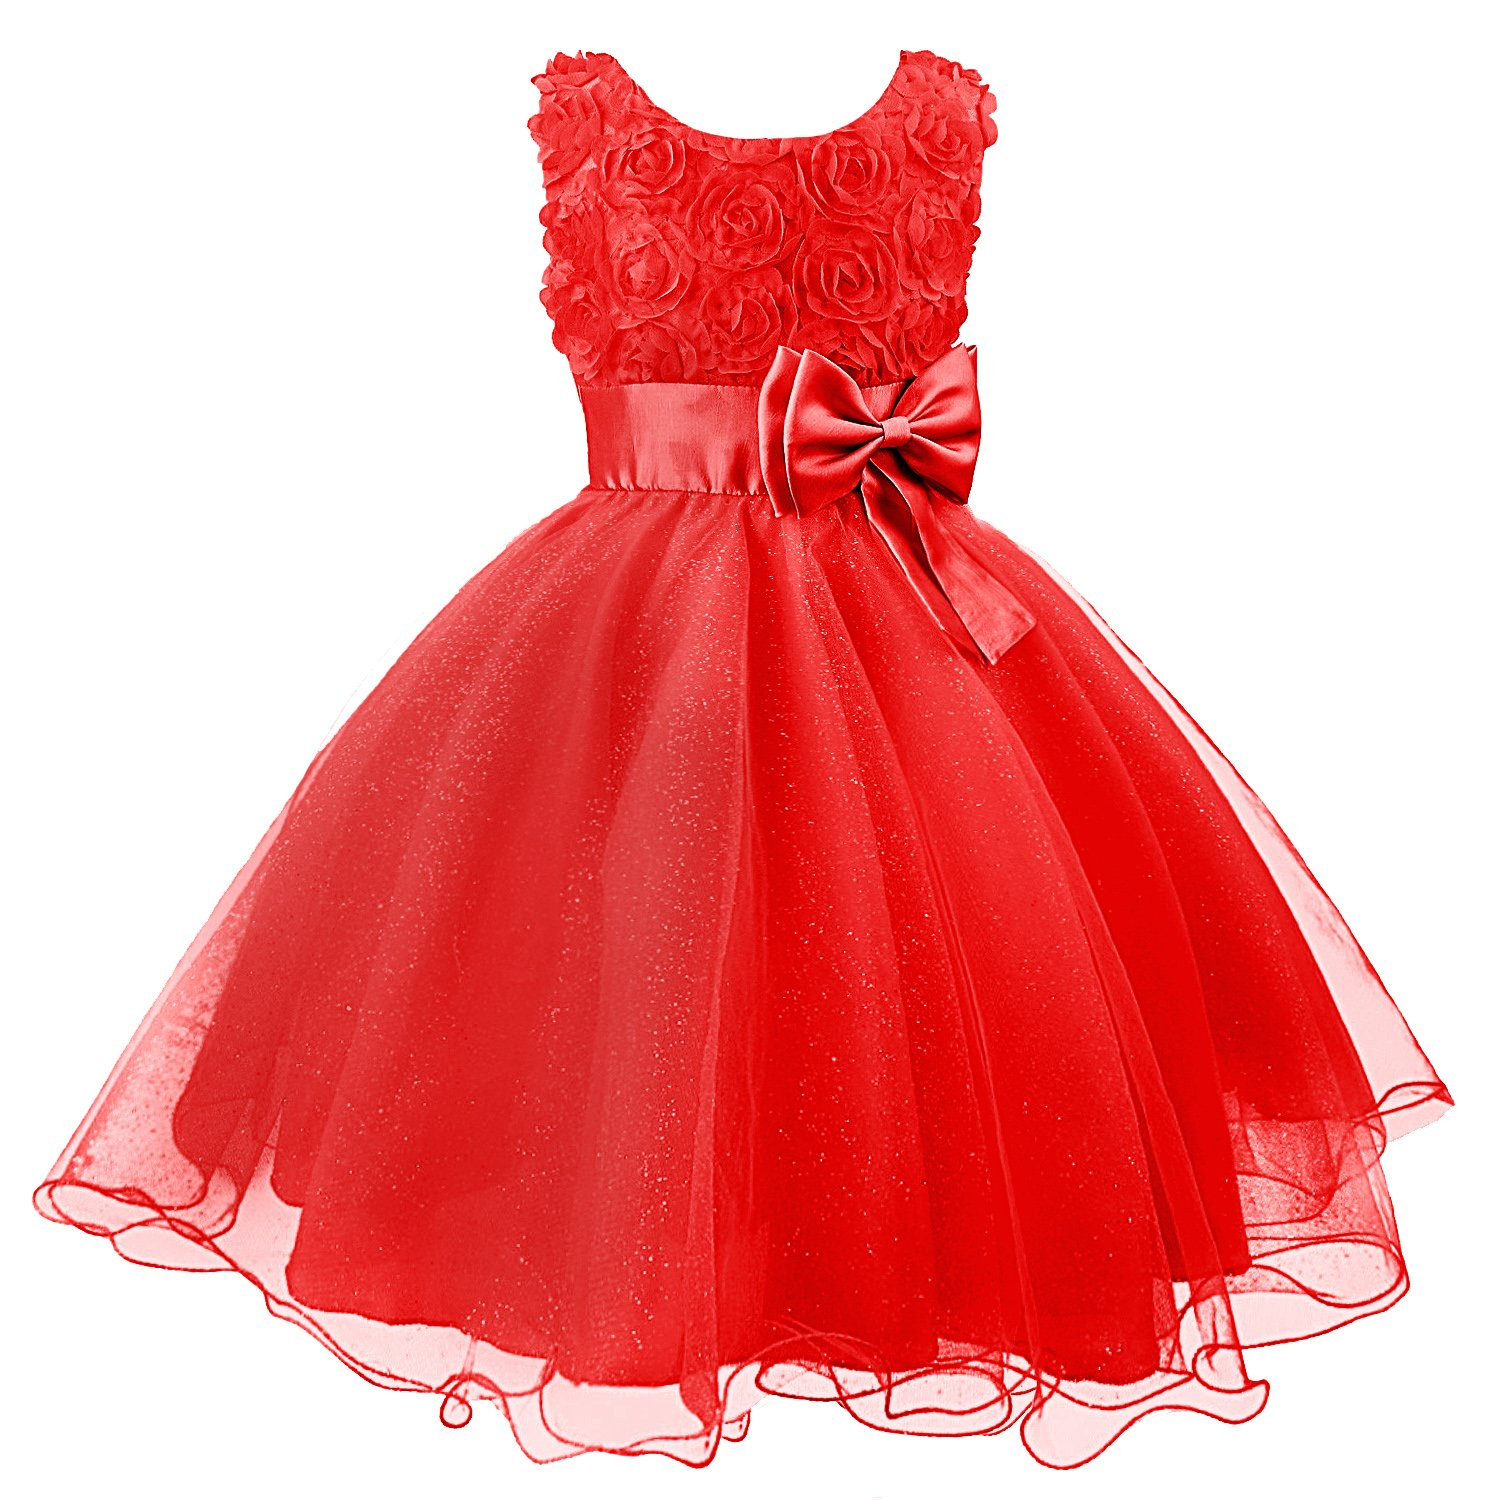 Discoball Girls Flower Dress Formal Wedding Bridesmaid Party Christening Dress Princess Lace Dress for Kids QYT Dress-51133